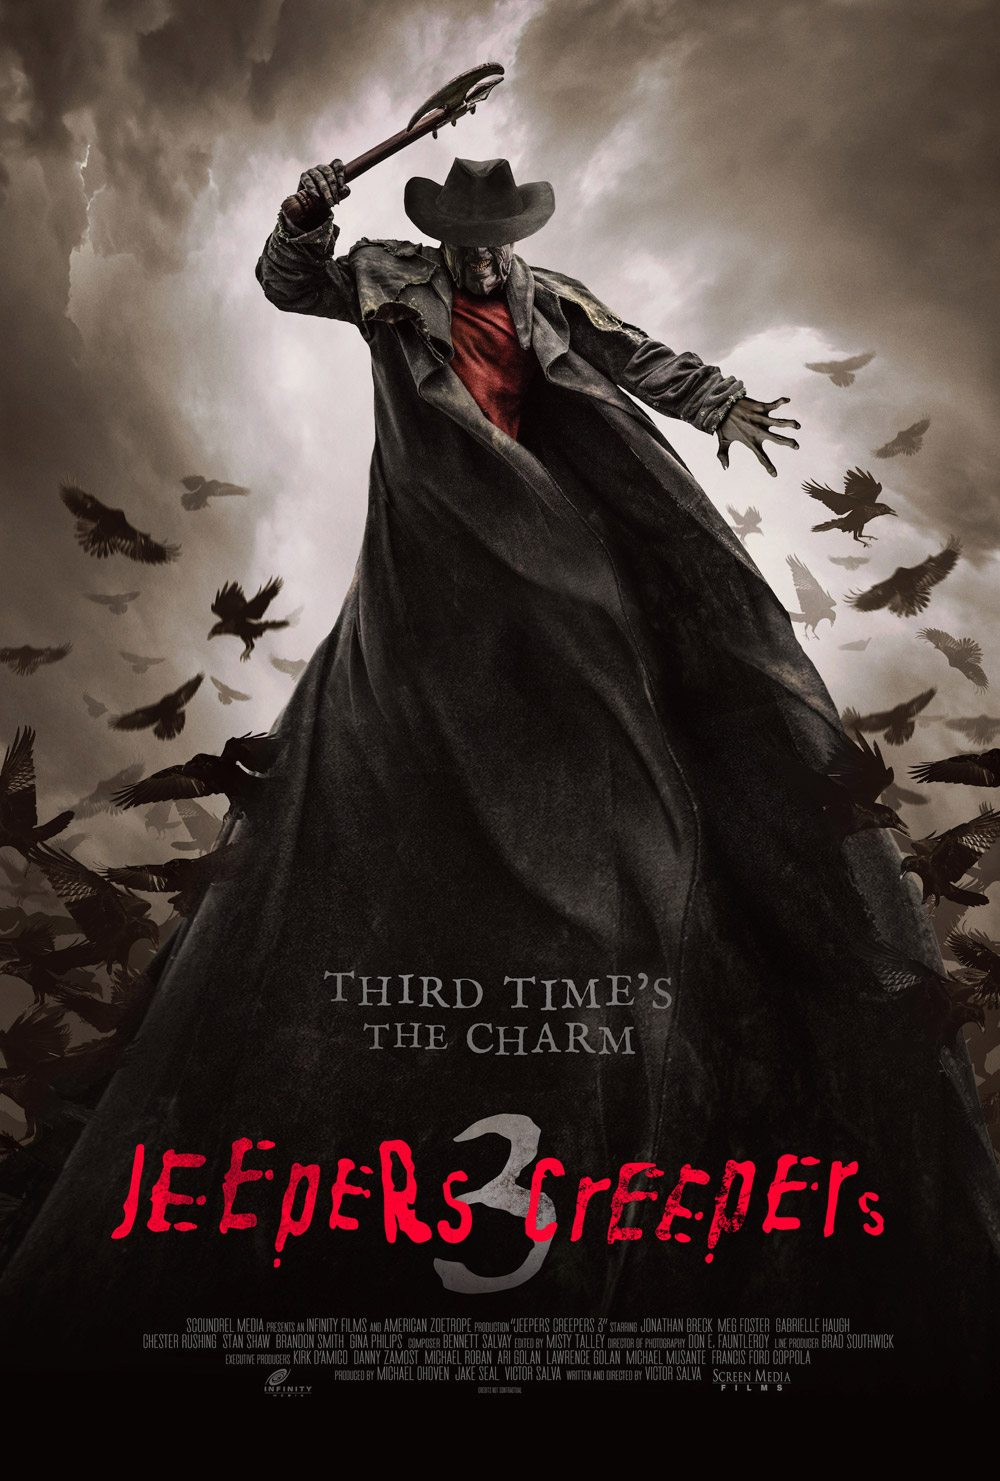 'Jeepers_Creepers_3'_theatrical_release_poster.jpg